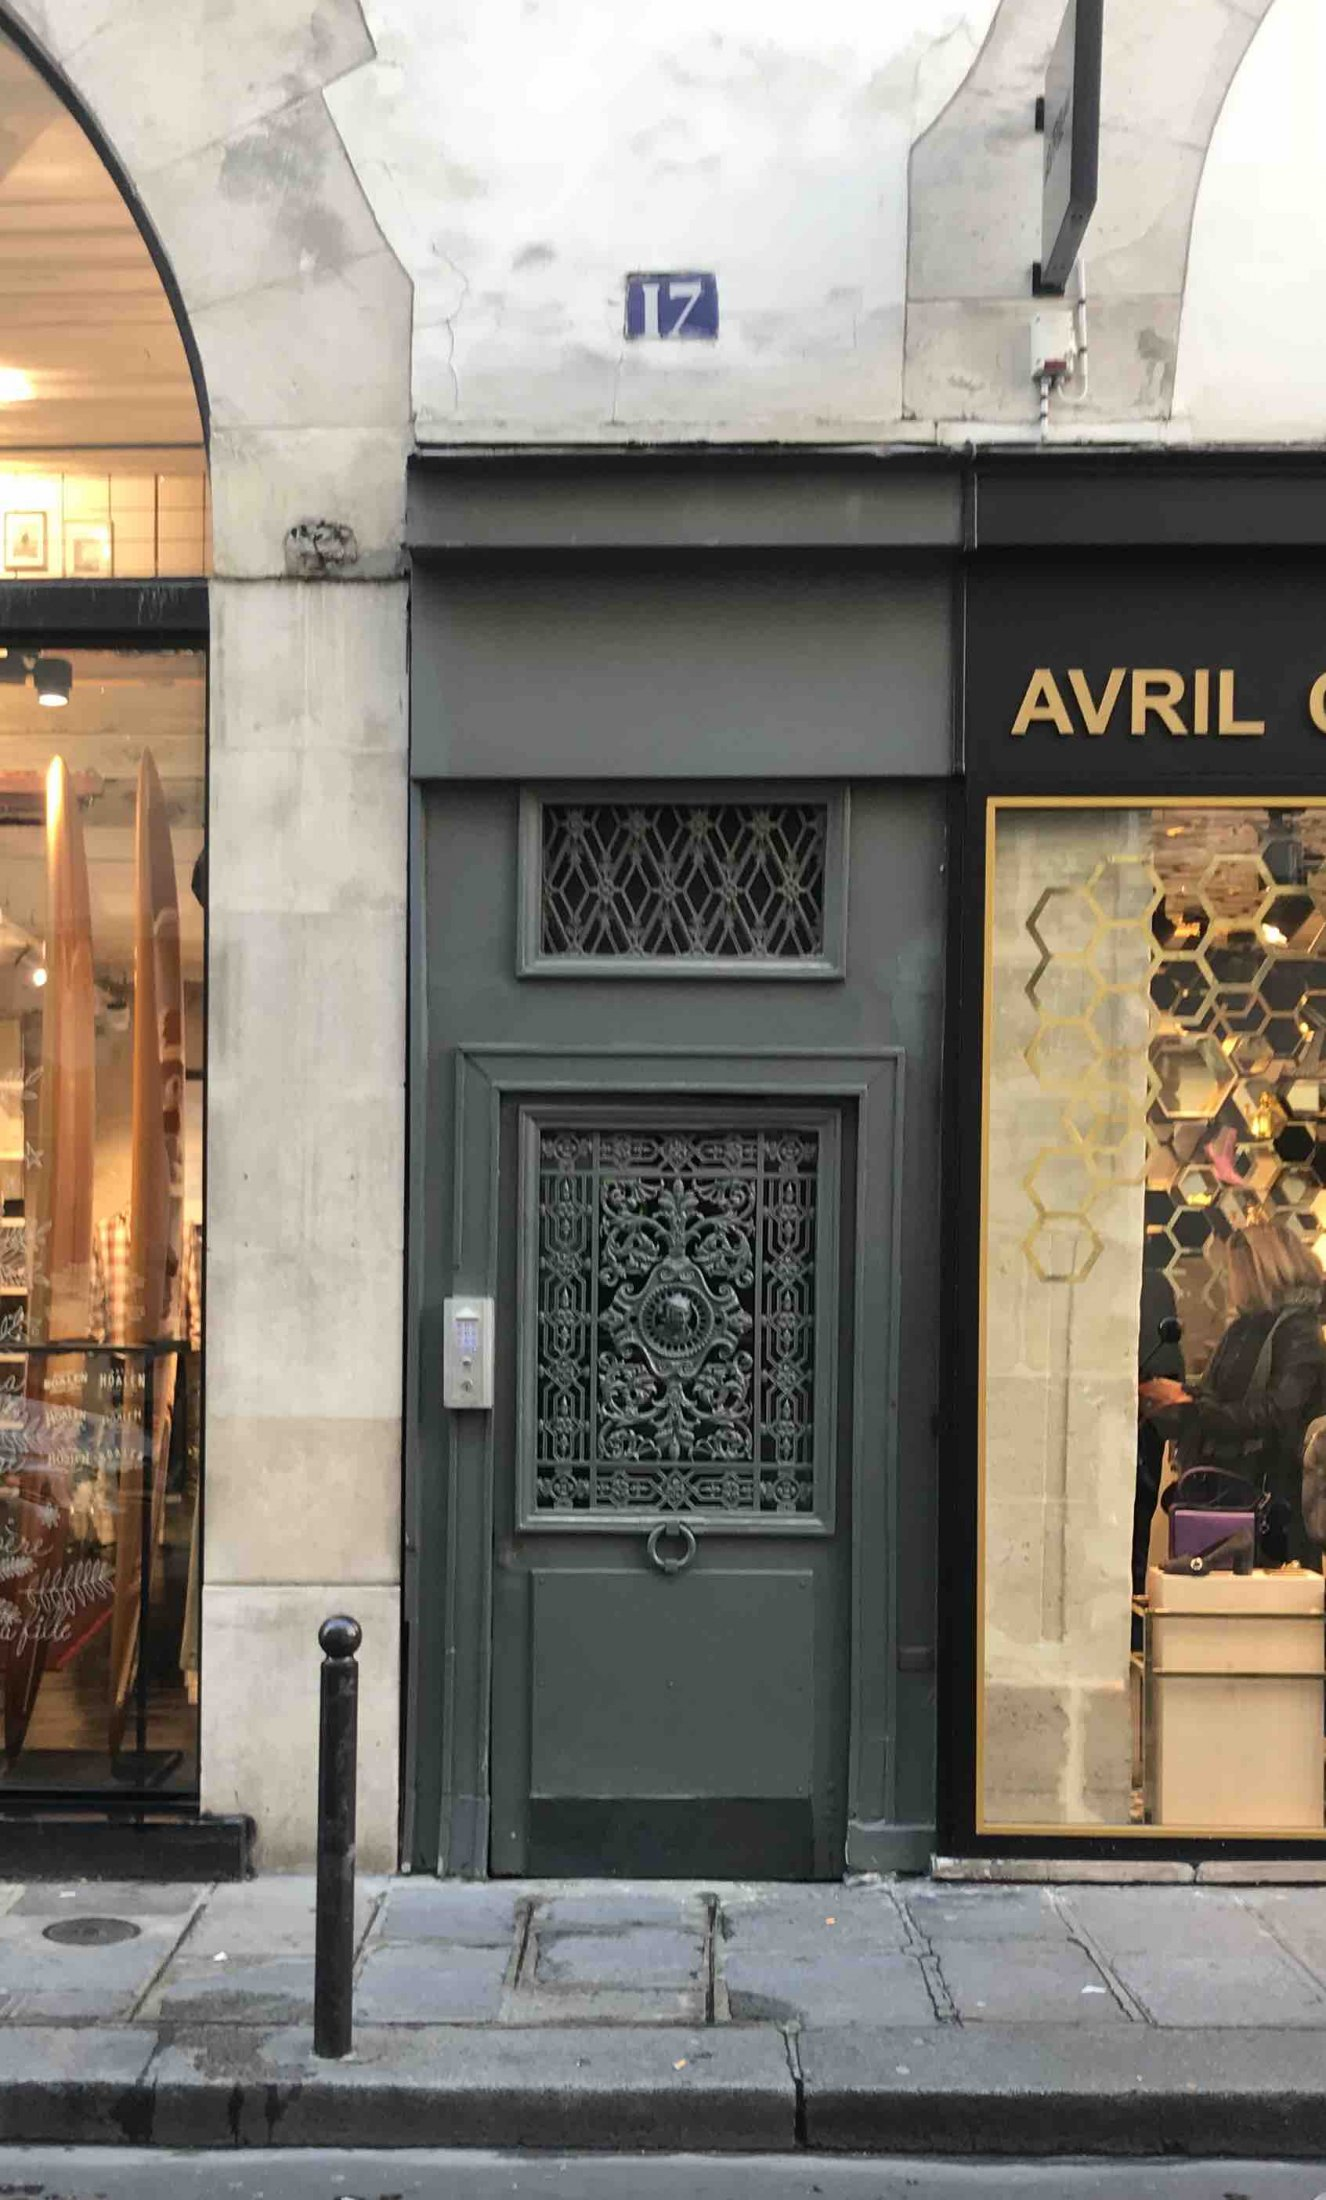 17 RUE DES QUATRE-VENTS PARIS 6